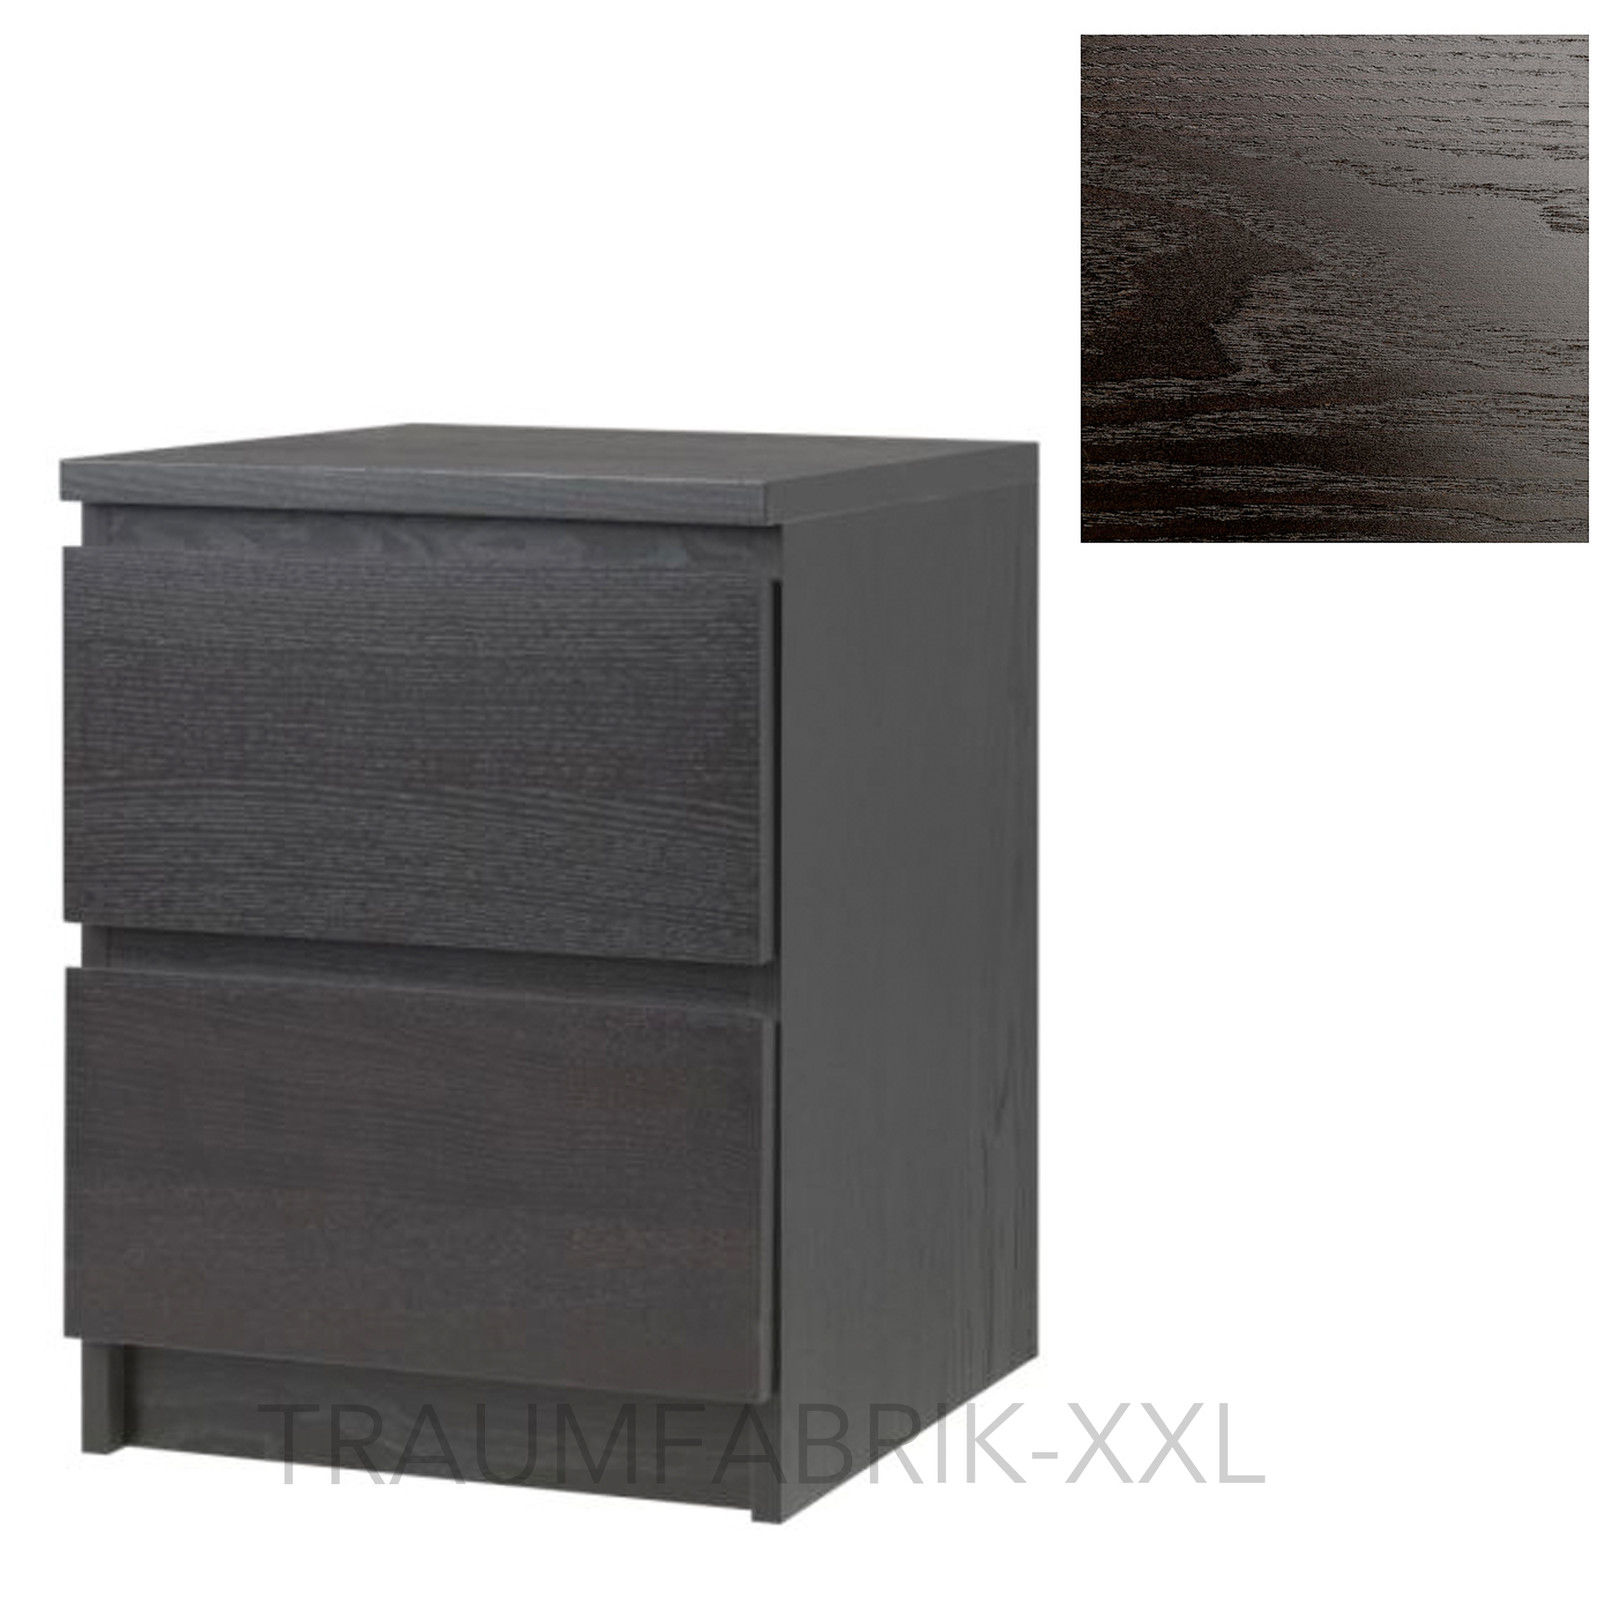 ikea kommode schrank mit 2 schubladen schwarz braun nachtisch ablagetisch neu traumfabrik xxl. Black Bedroom Furniture Sets. Home Design Ideas